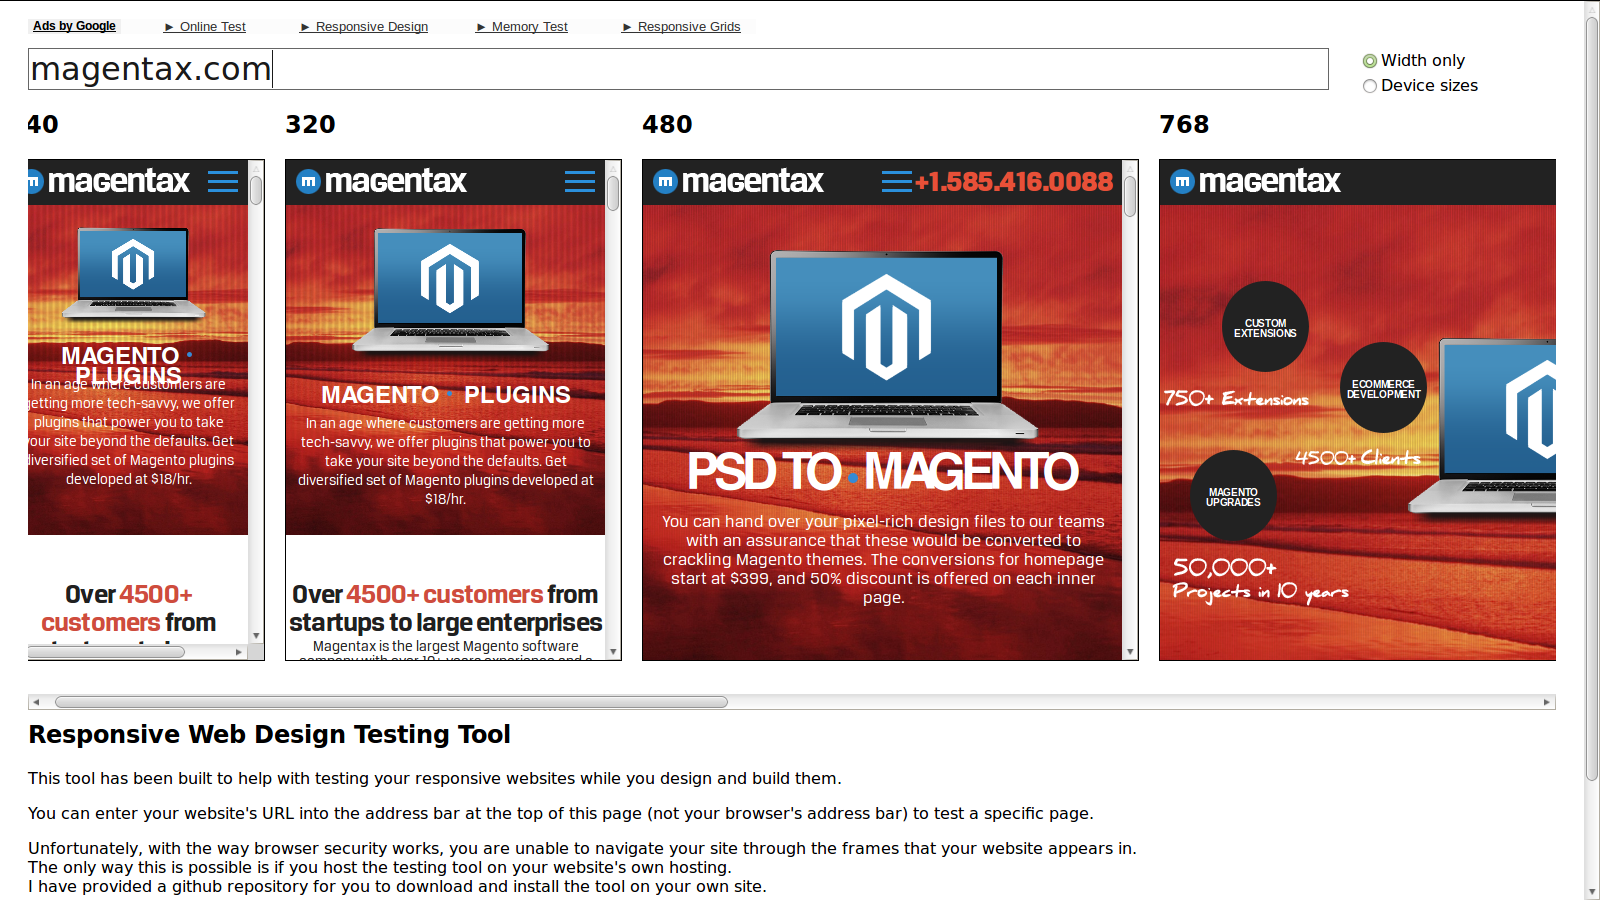 responsive web design tool: 15 Best Testing Tools For Evaluating Your Website Responsiveness